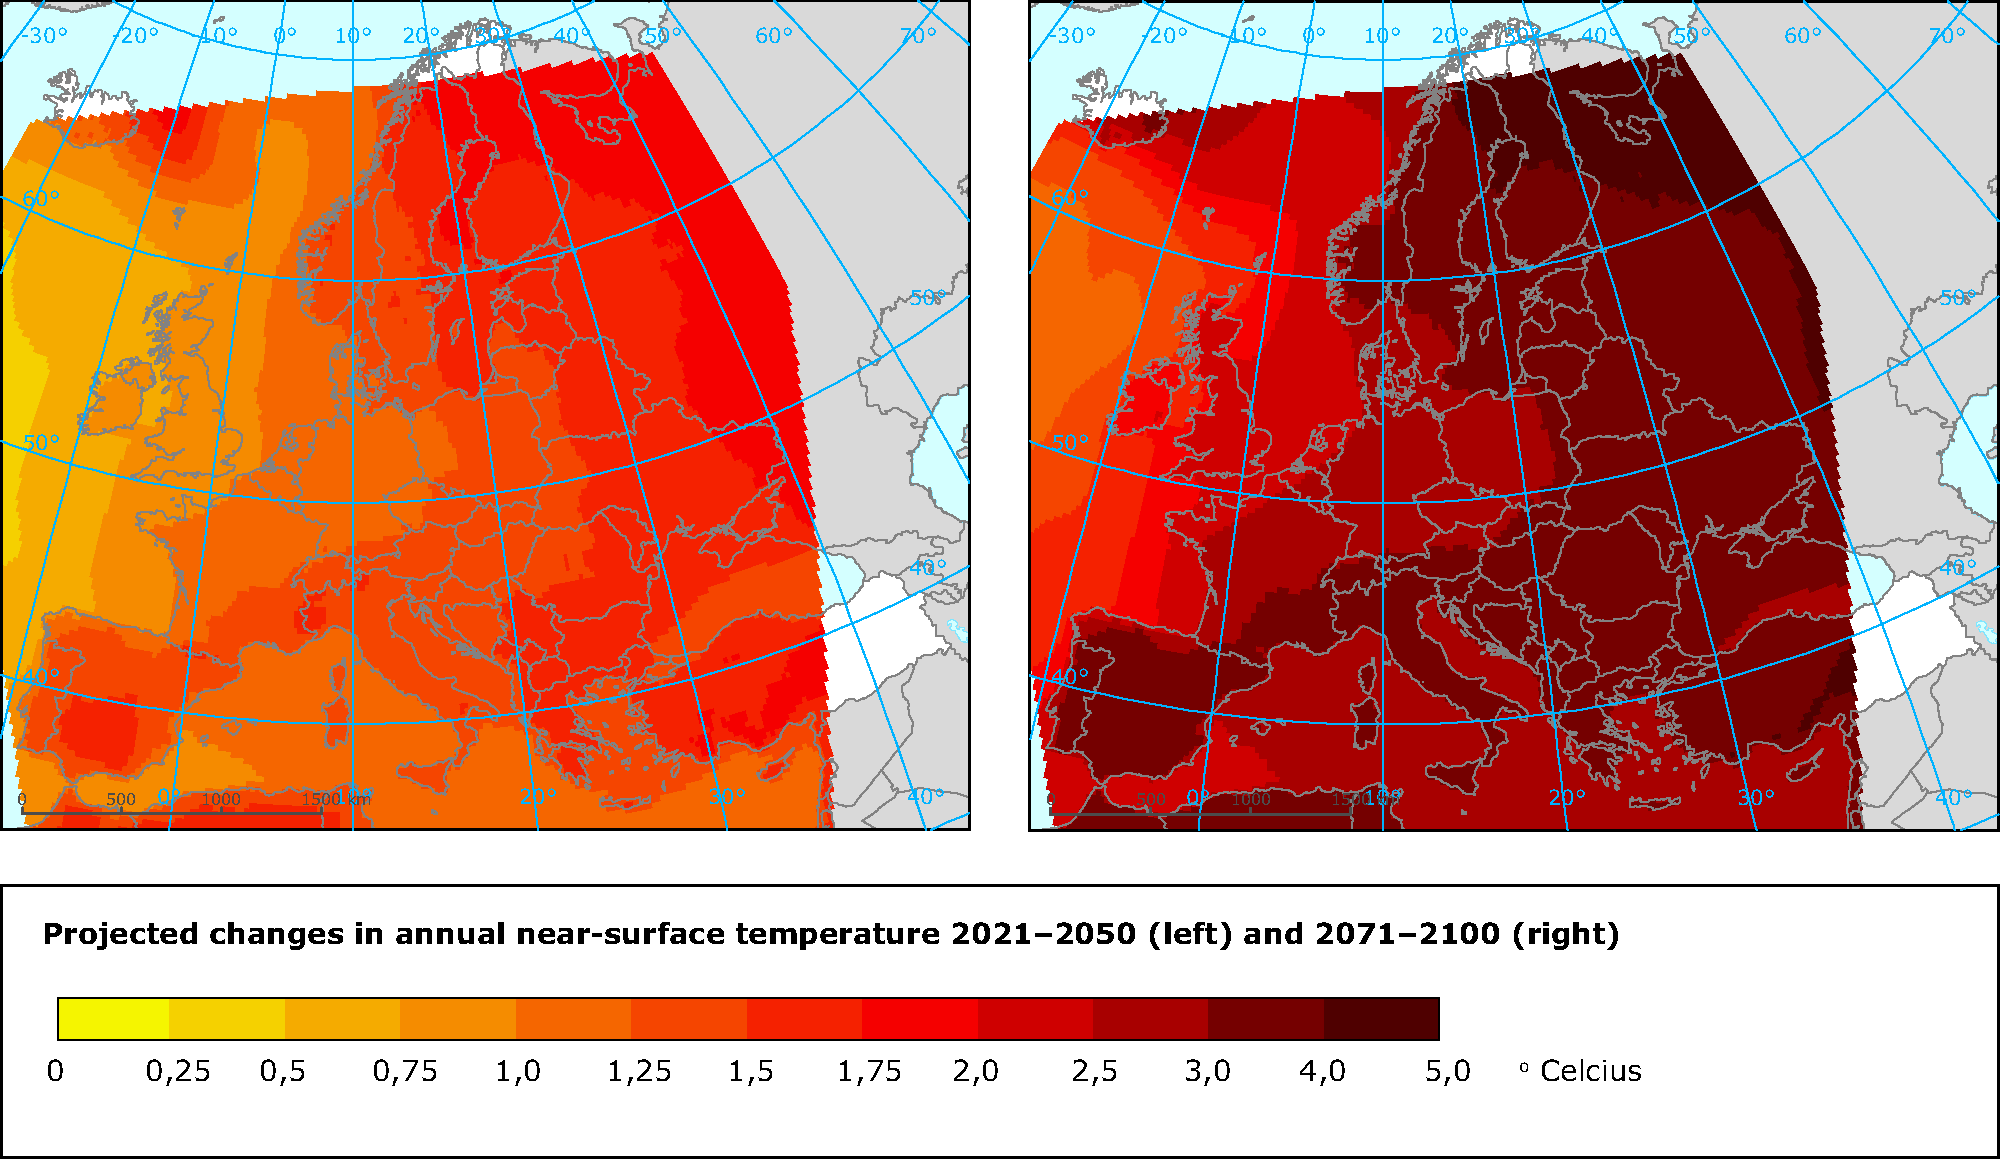 Projected changes in annual near-surface temperature for periods 2021–2050 and 2071–2100